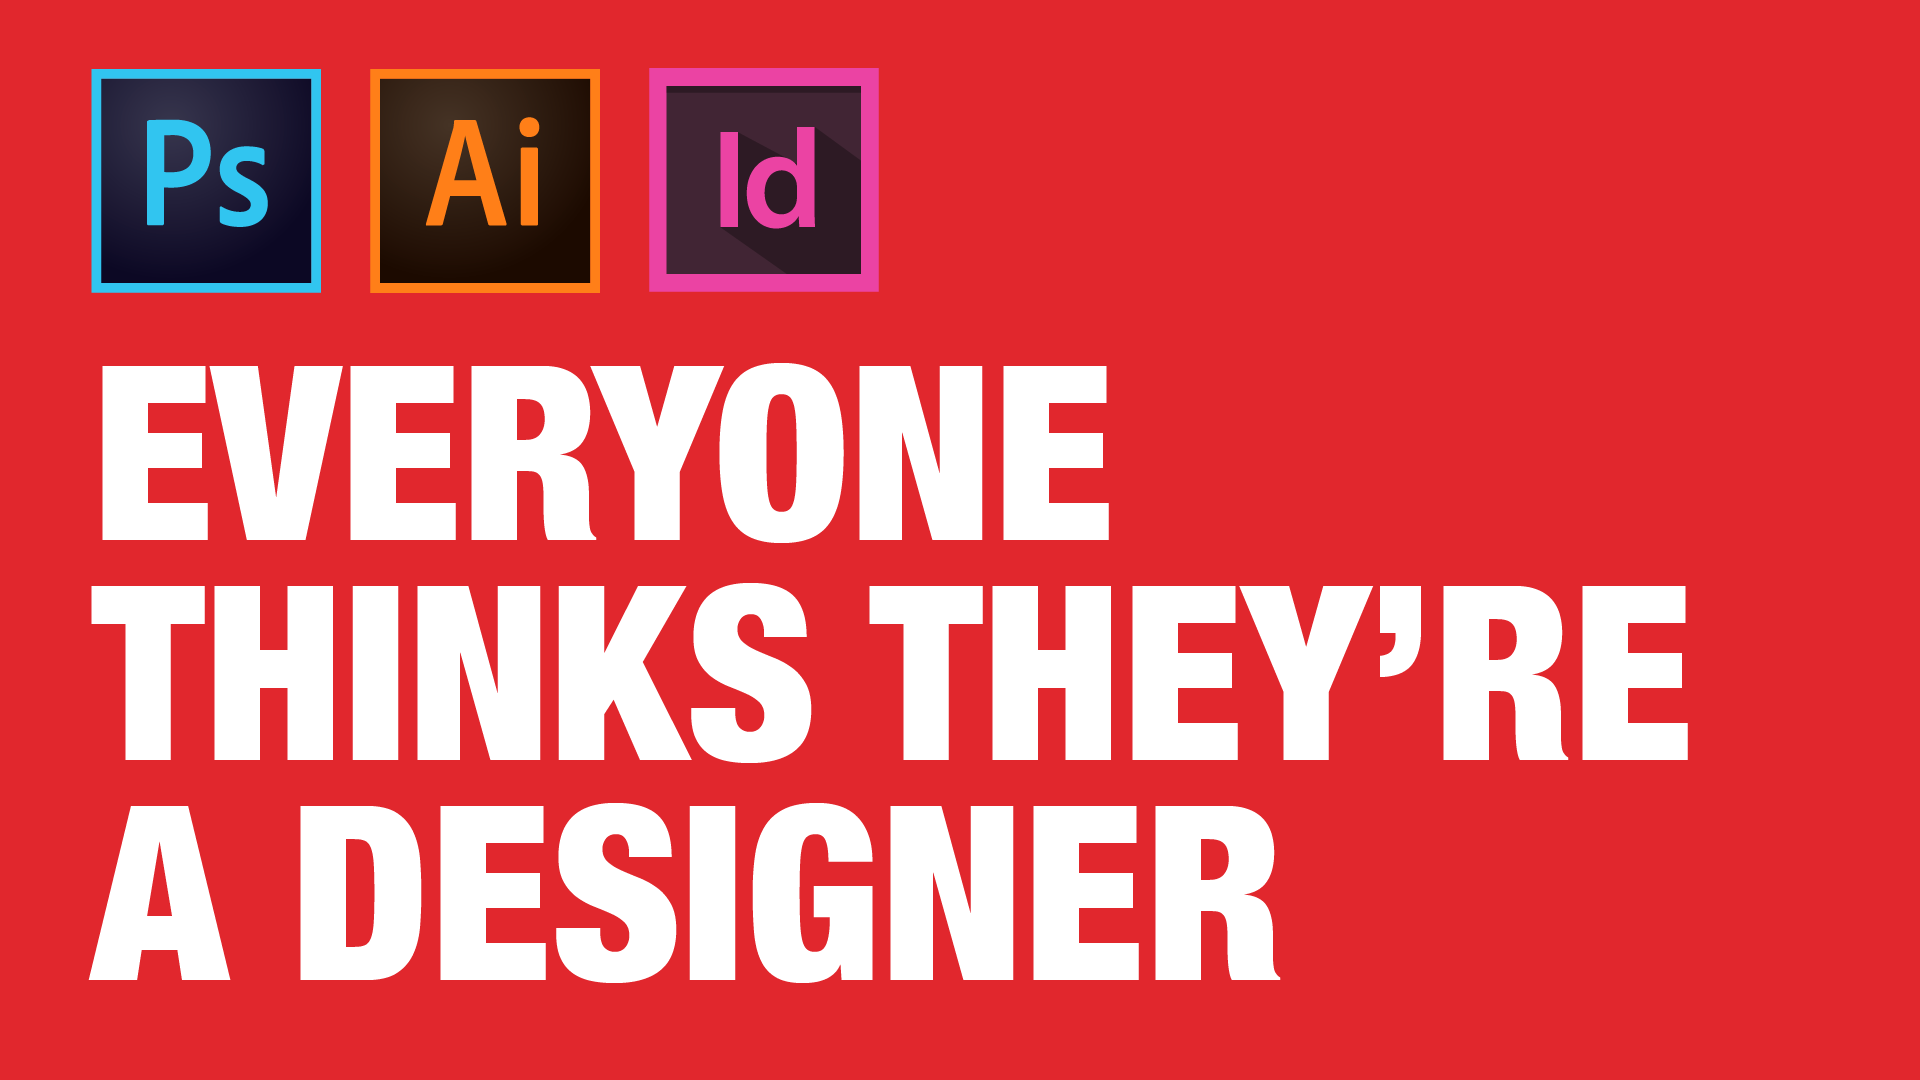 Manraj Ubhi - Everyone thinks they're a designer